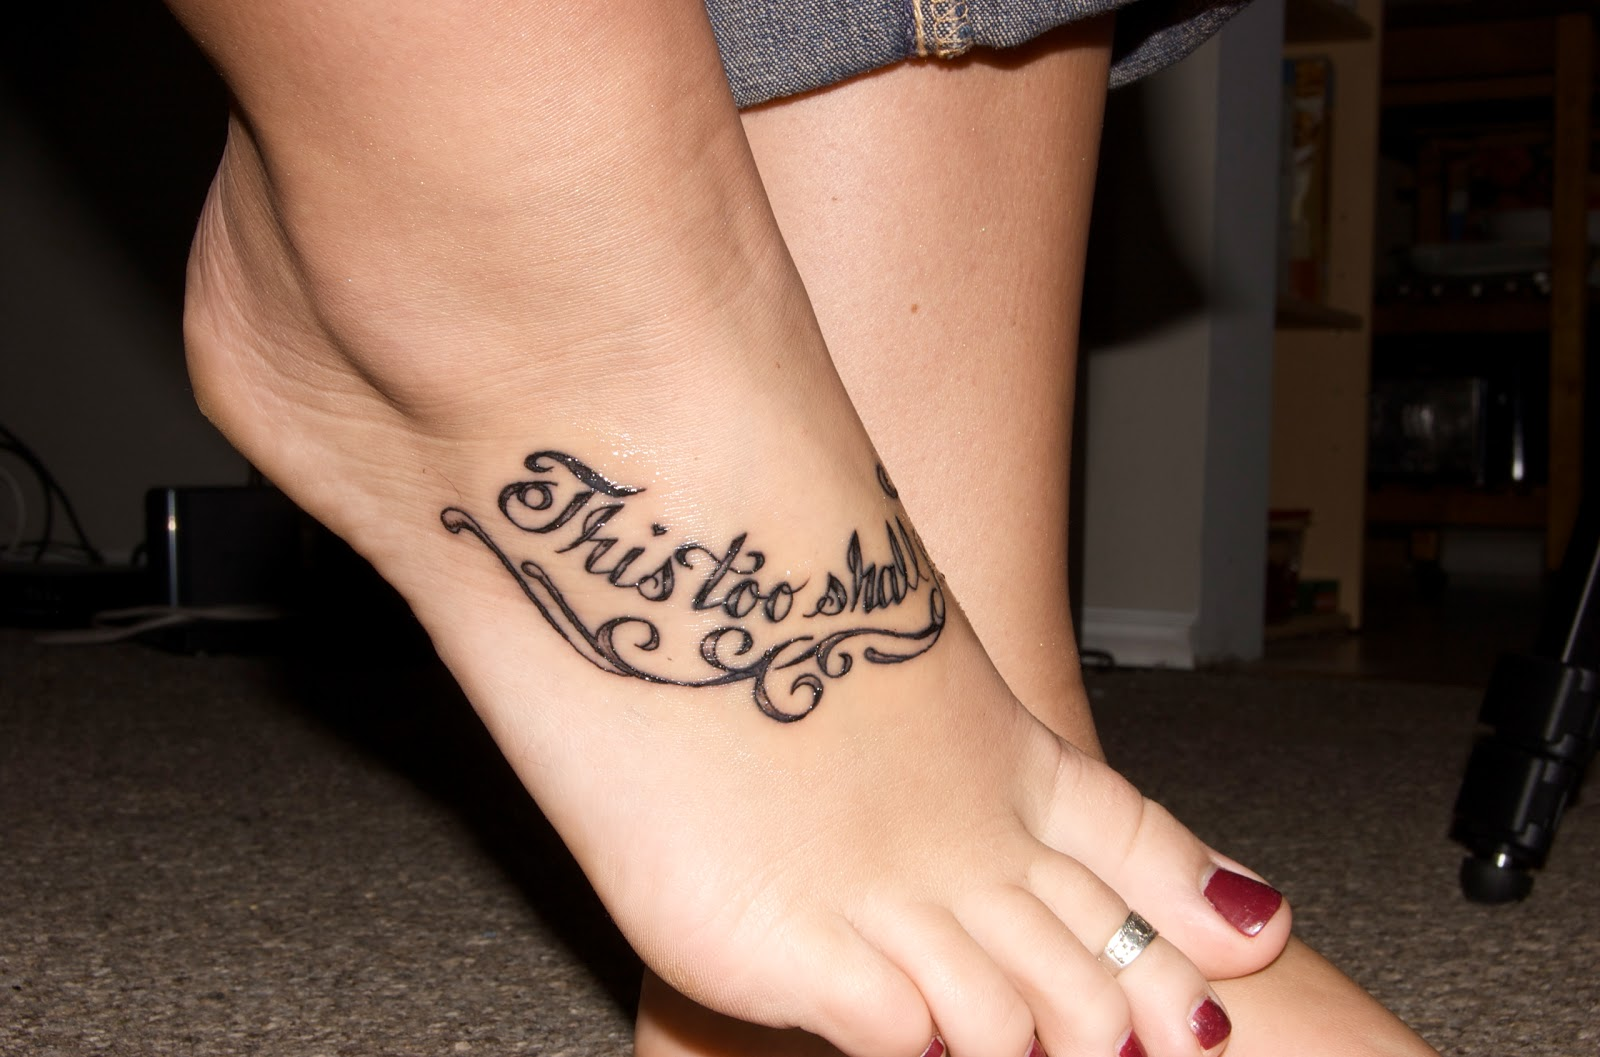 Tattoo Tattooz: Foot